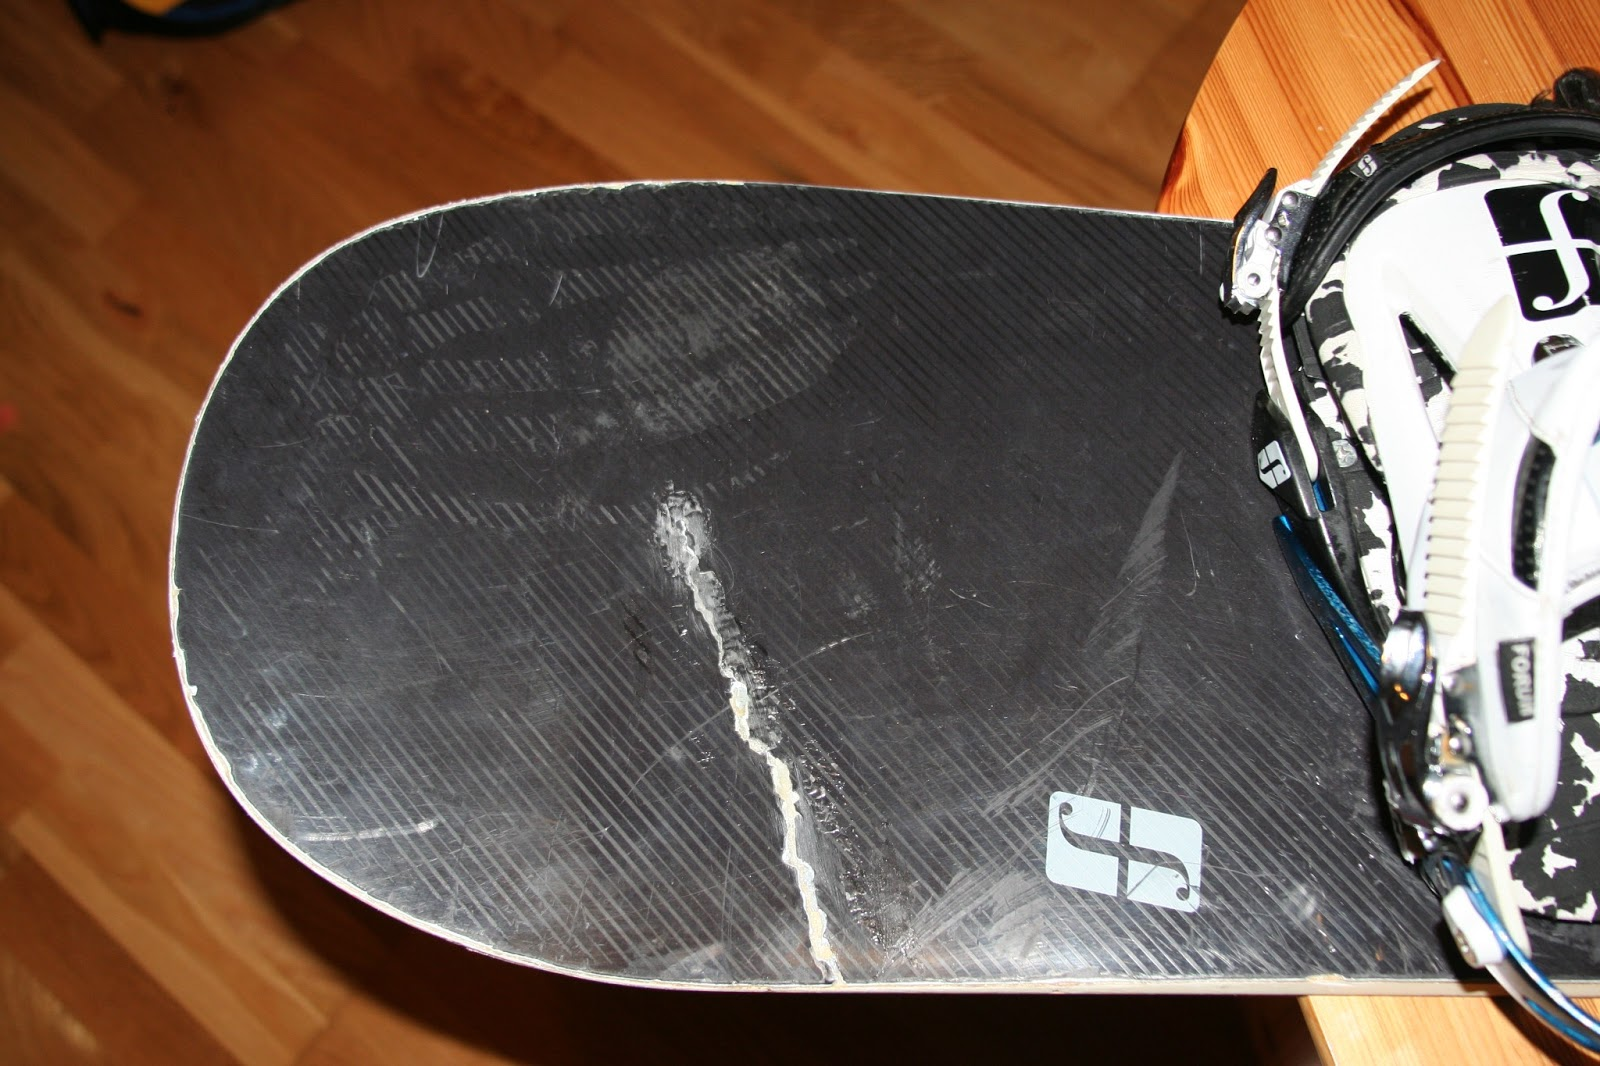 Cracked Snowboard Fix